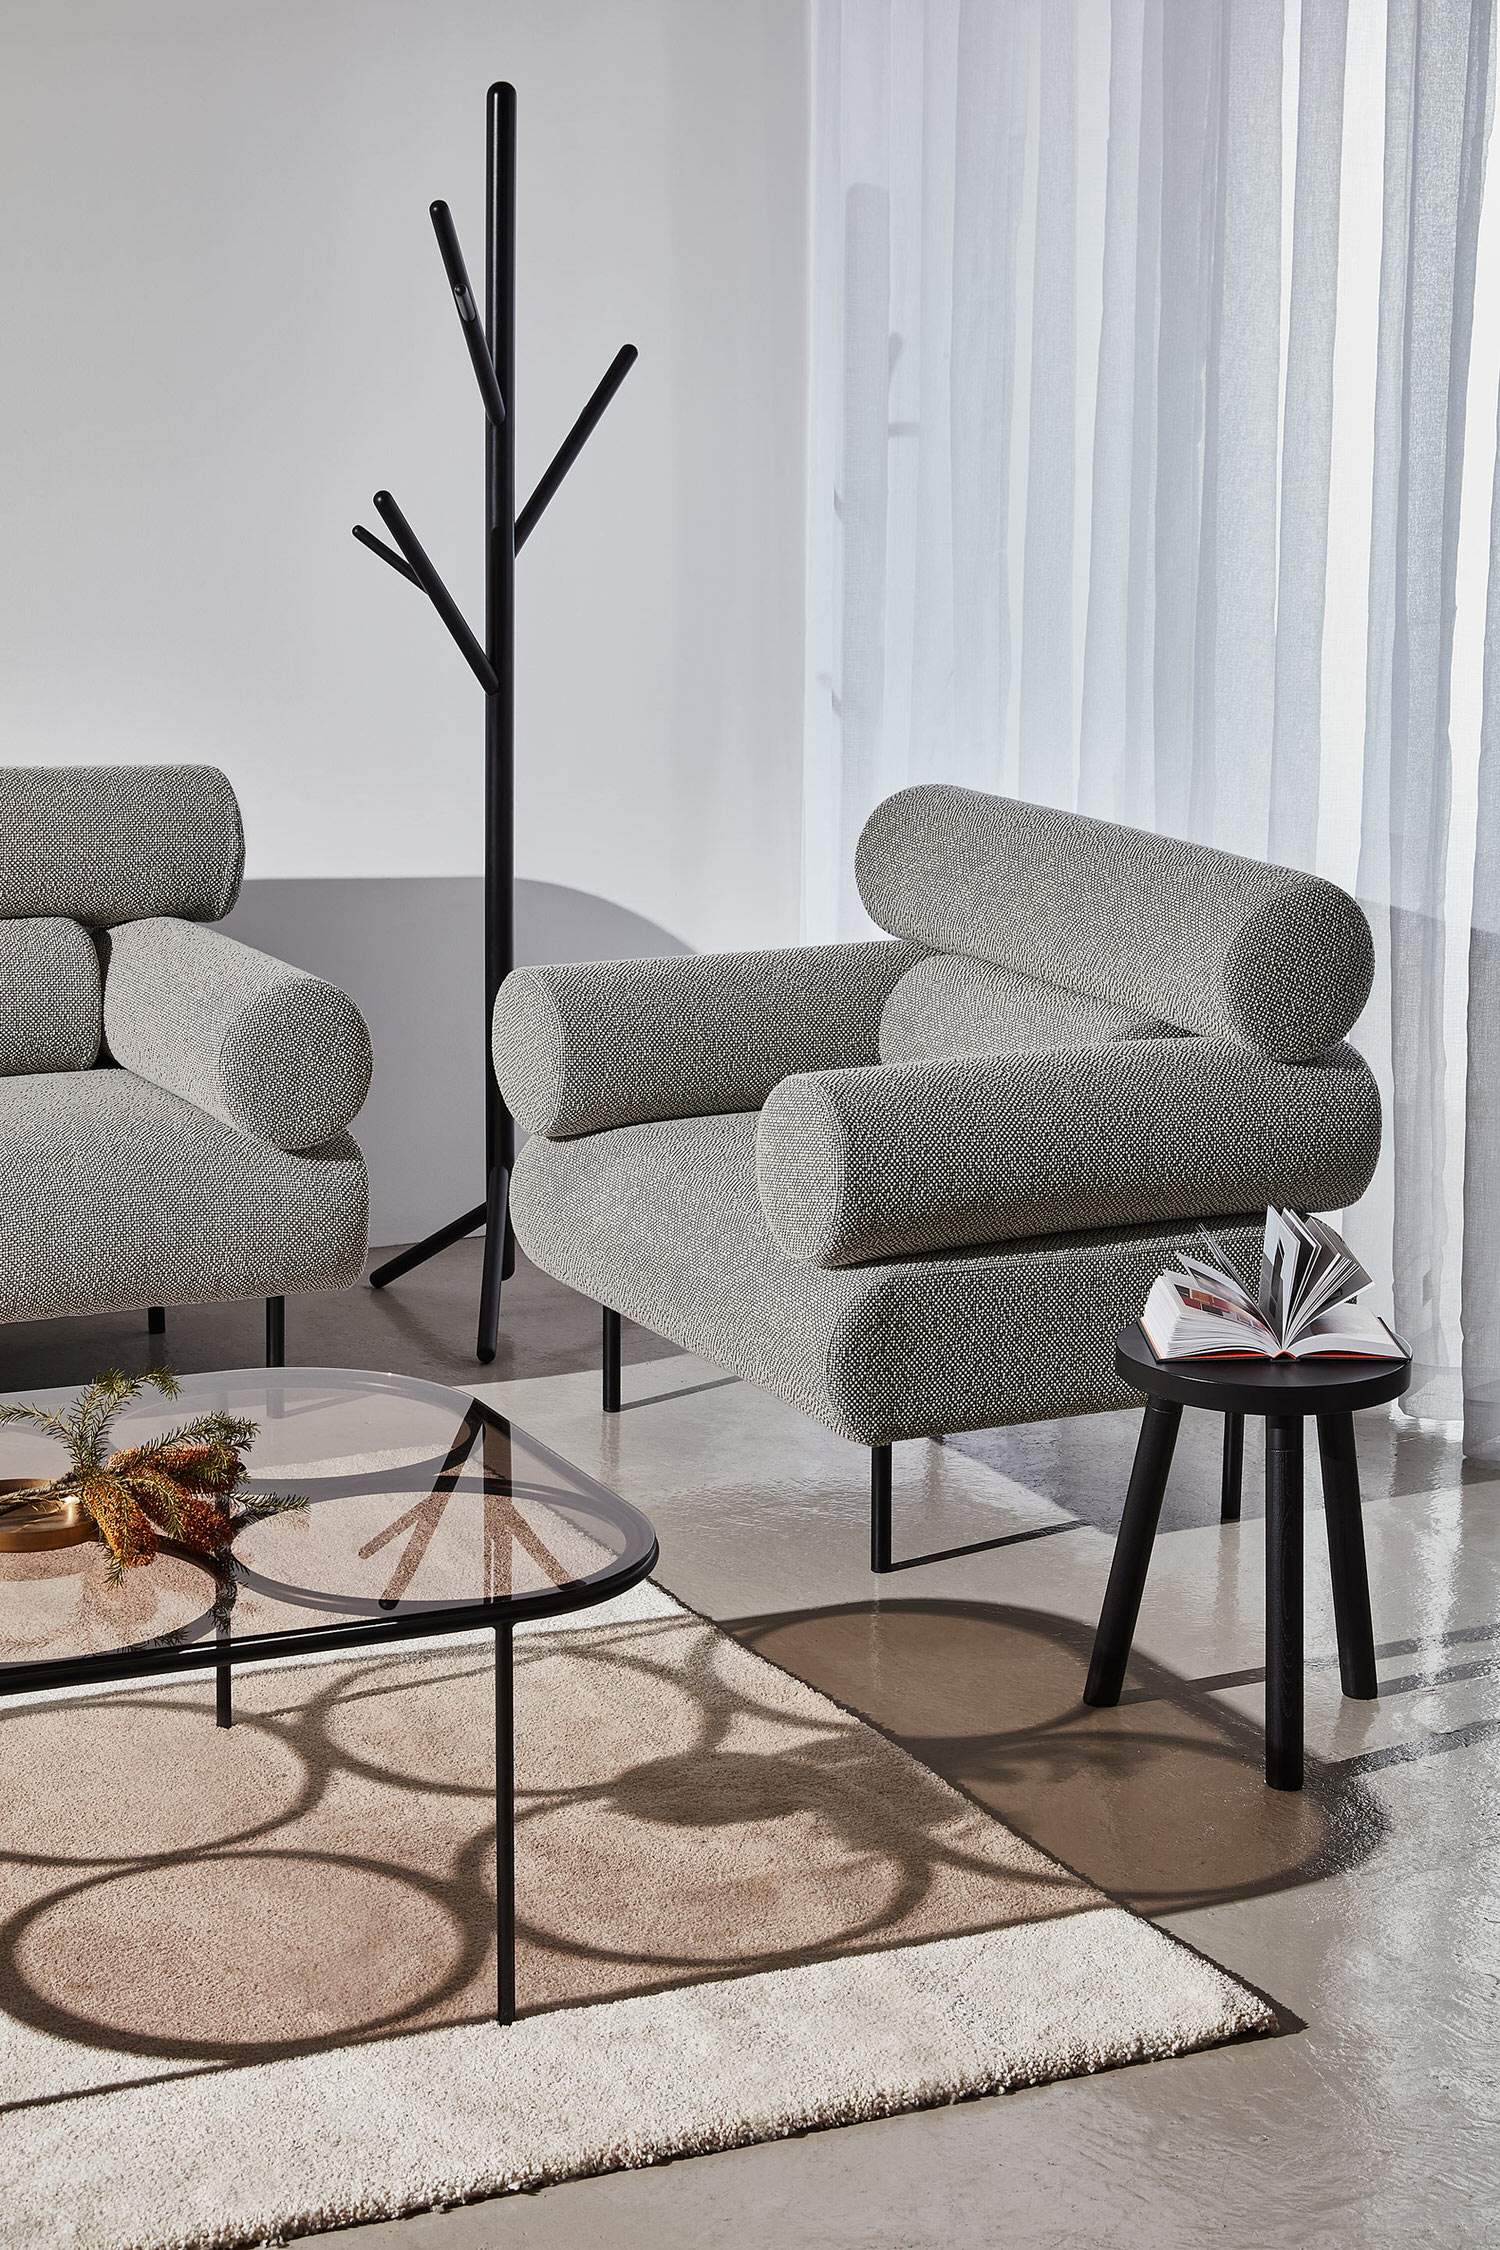 DesignByThem Cabin Lounge Armchair, Chapel Coffee Table, Photo Pete Daly   Yellowtrace